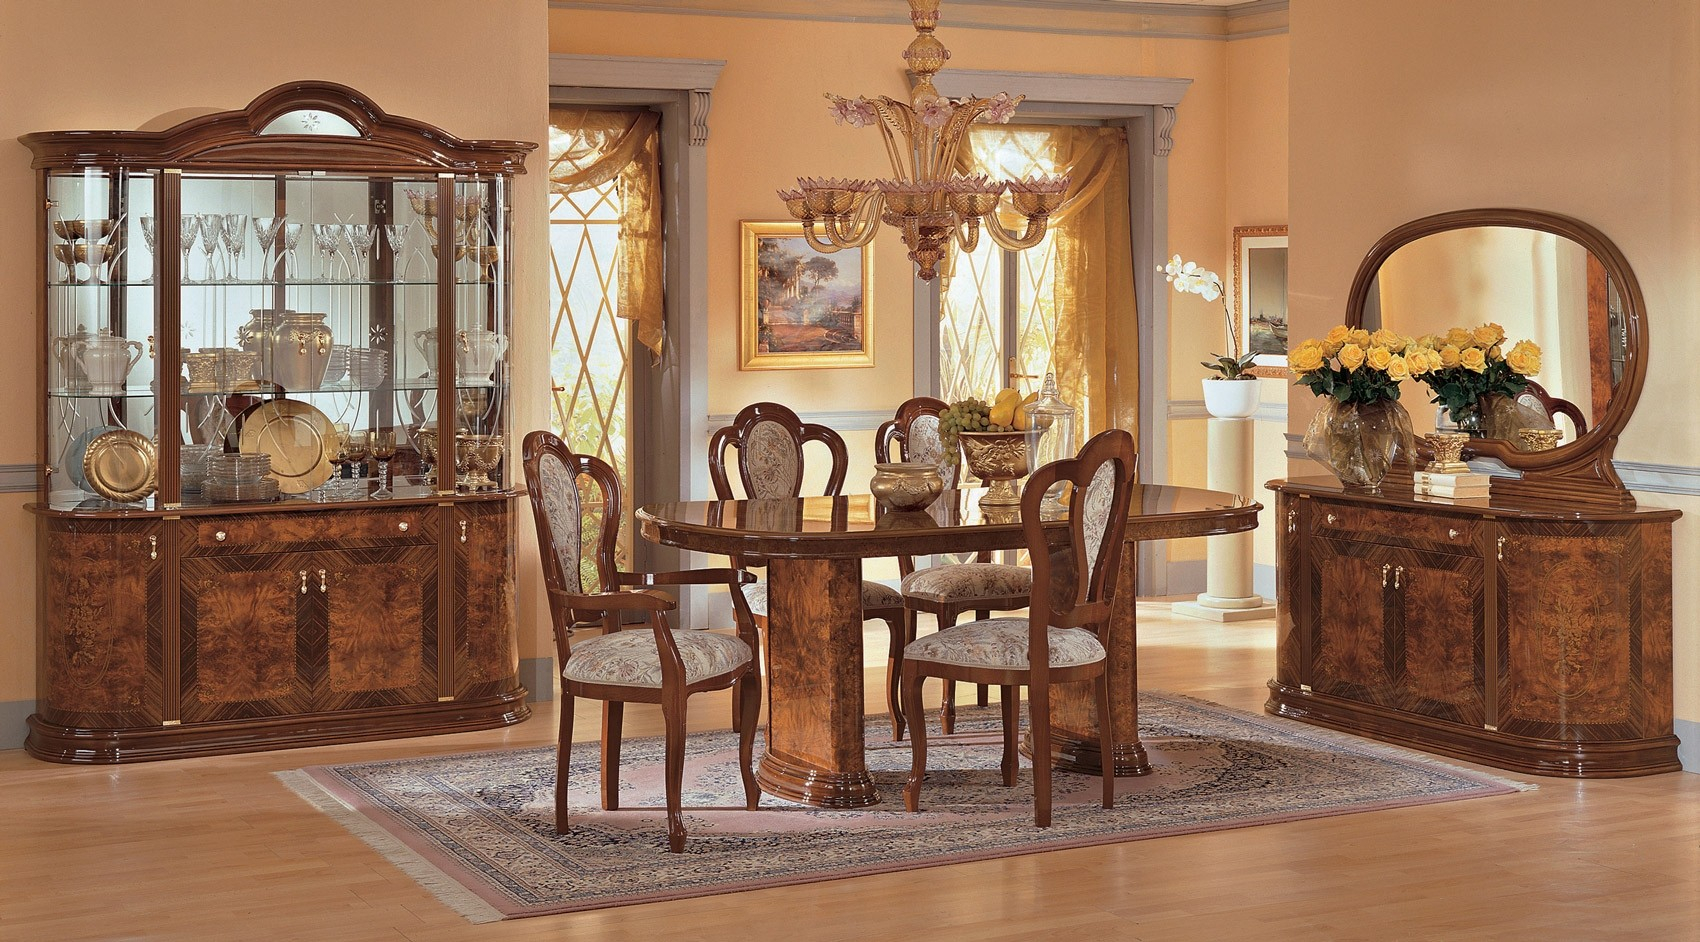 Milady Italian Dining Room Set In Brown Lacquer Finish in 10 Genius Tricks of How to Build Italian Living Room Set